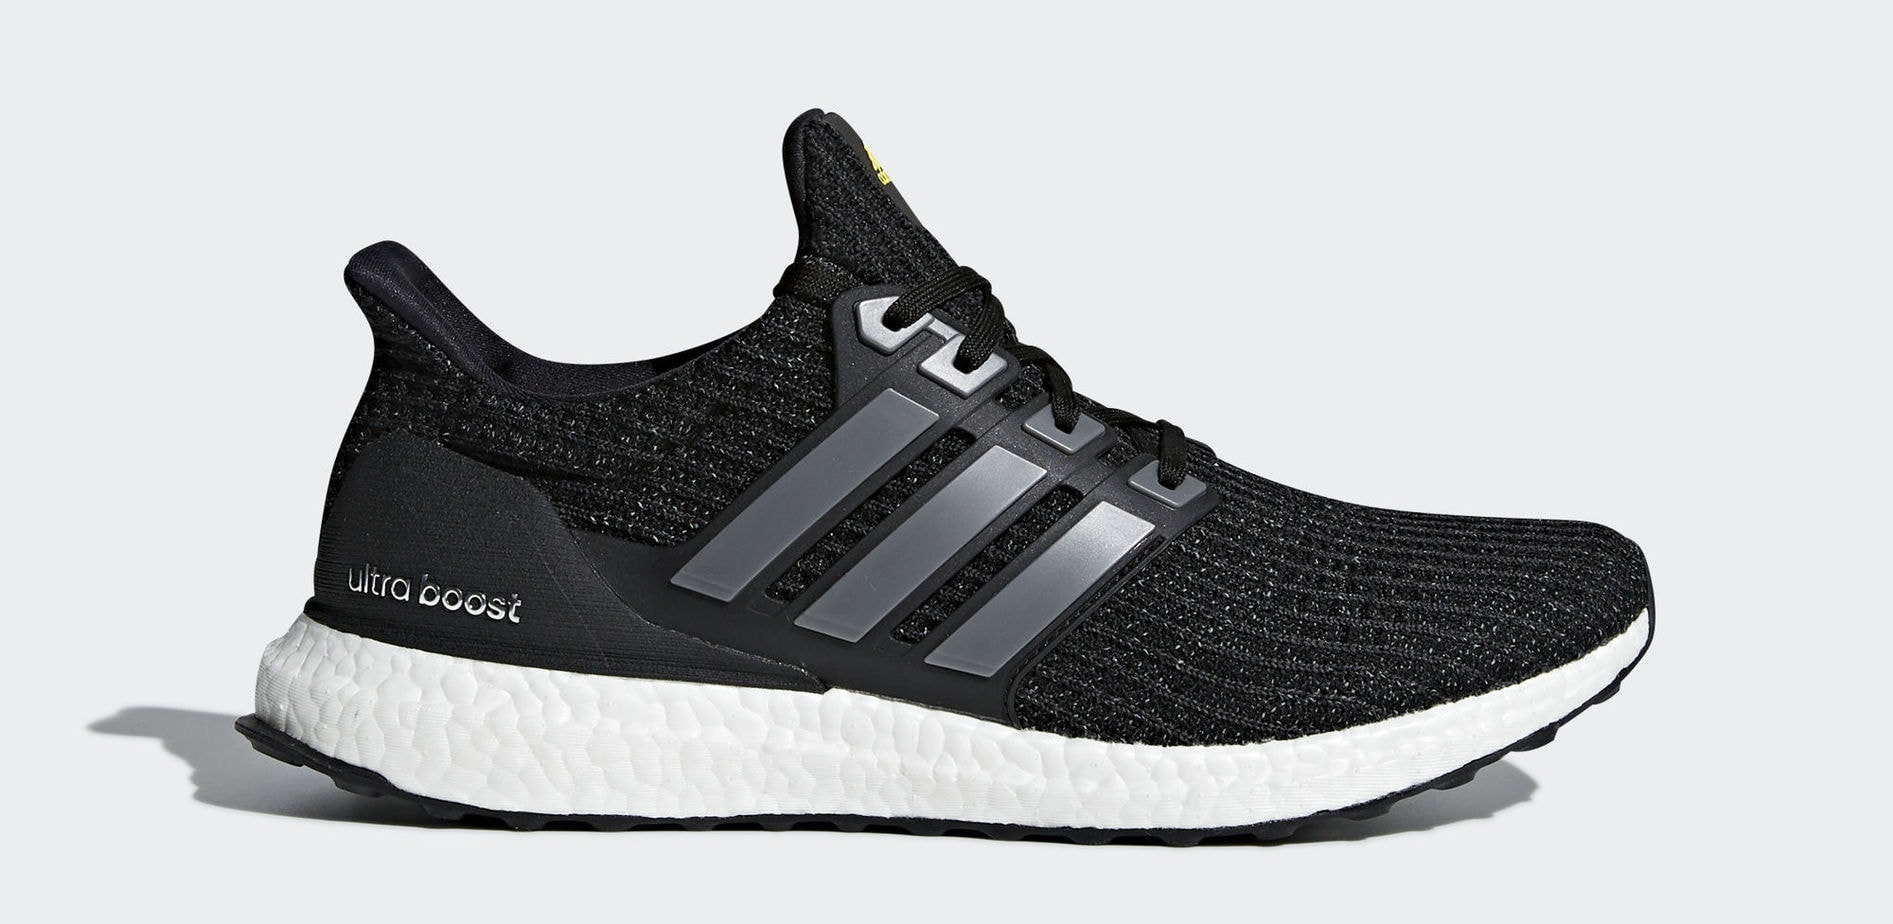 af7a5261c8a adidas ultra boost 2018 release dates justfreshkicks - New Ultra Boost  Releases